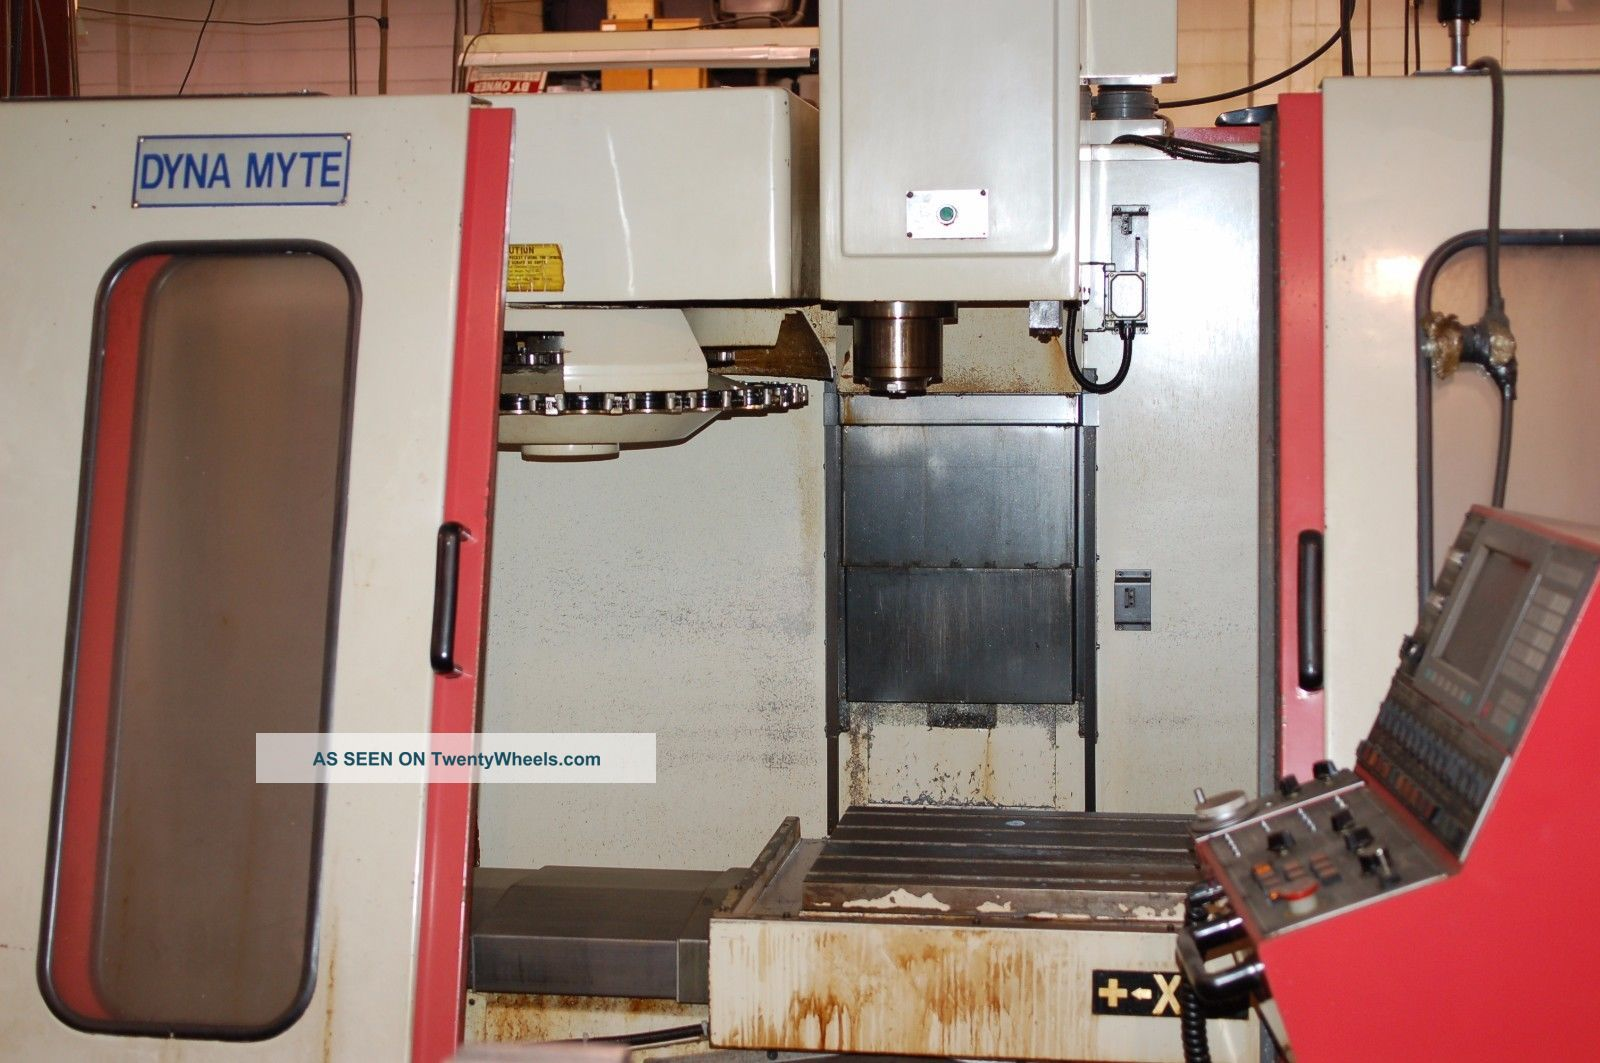 Dyna Myte 4800 Cnc Vertical Machining Center - 1995 Milling Machines photo